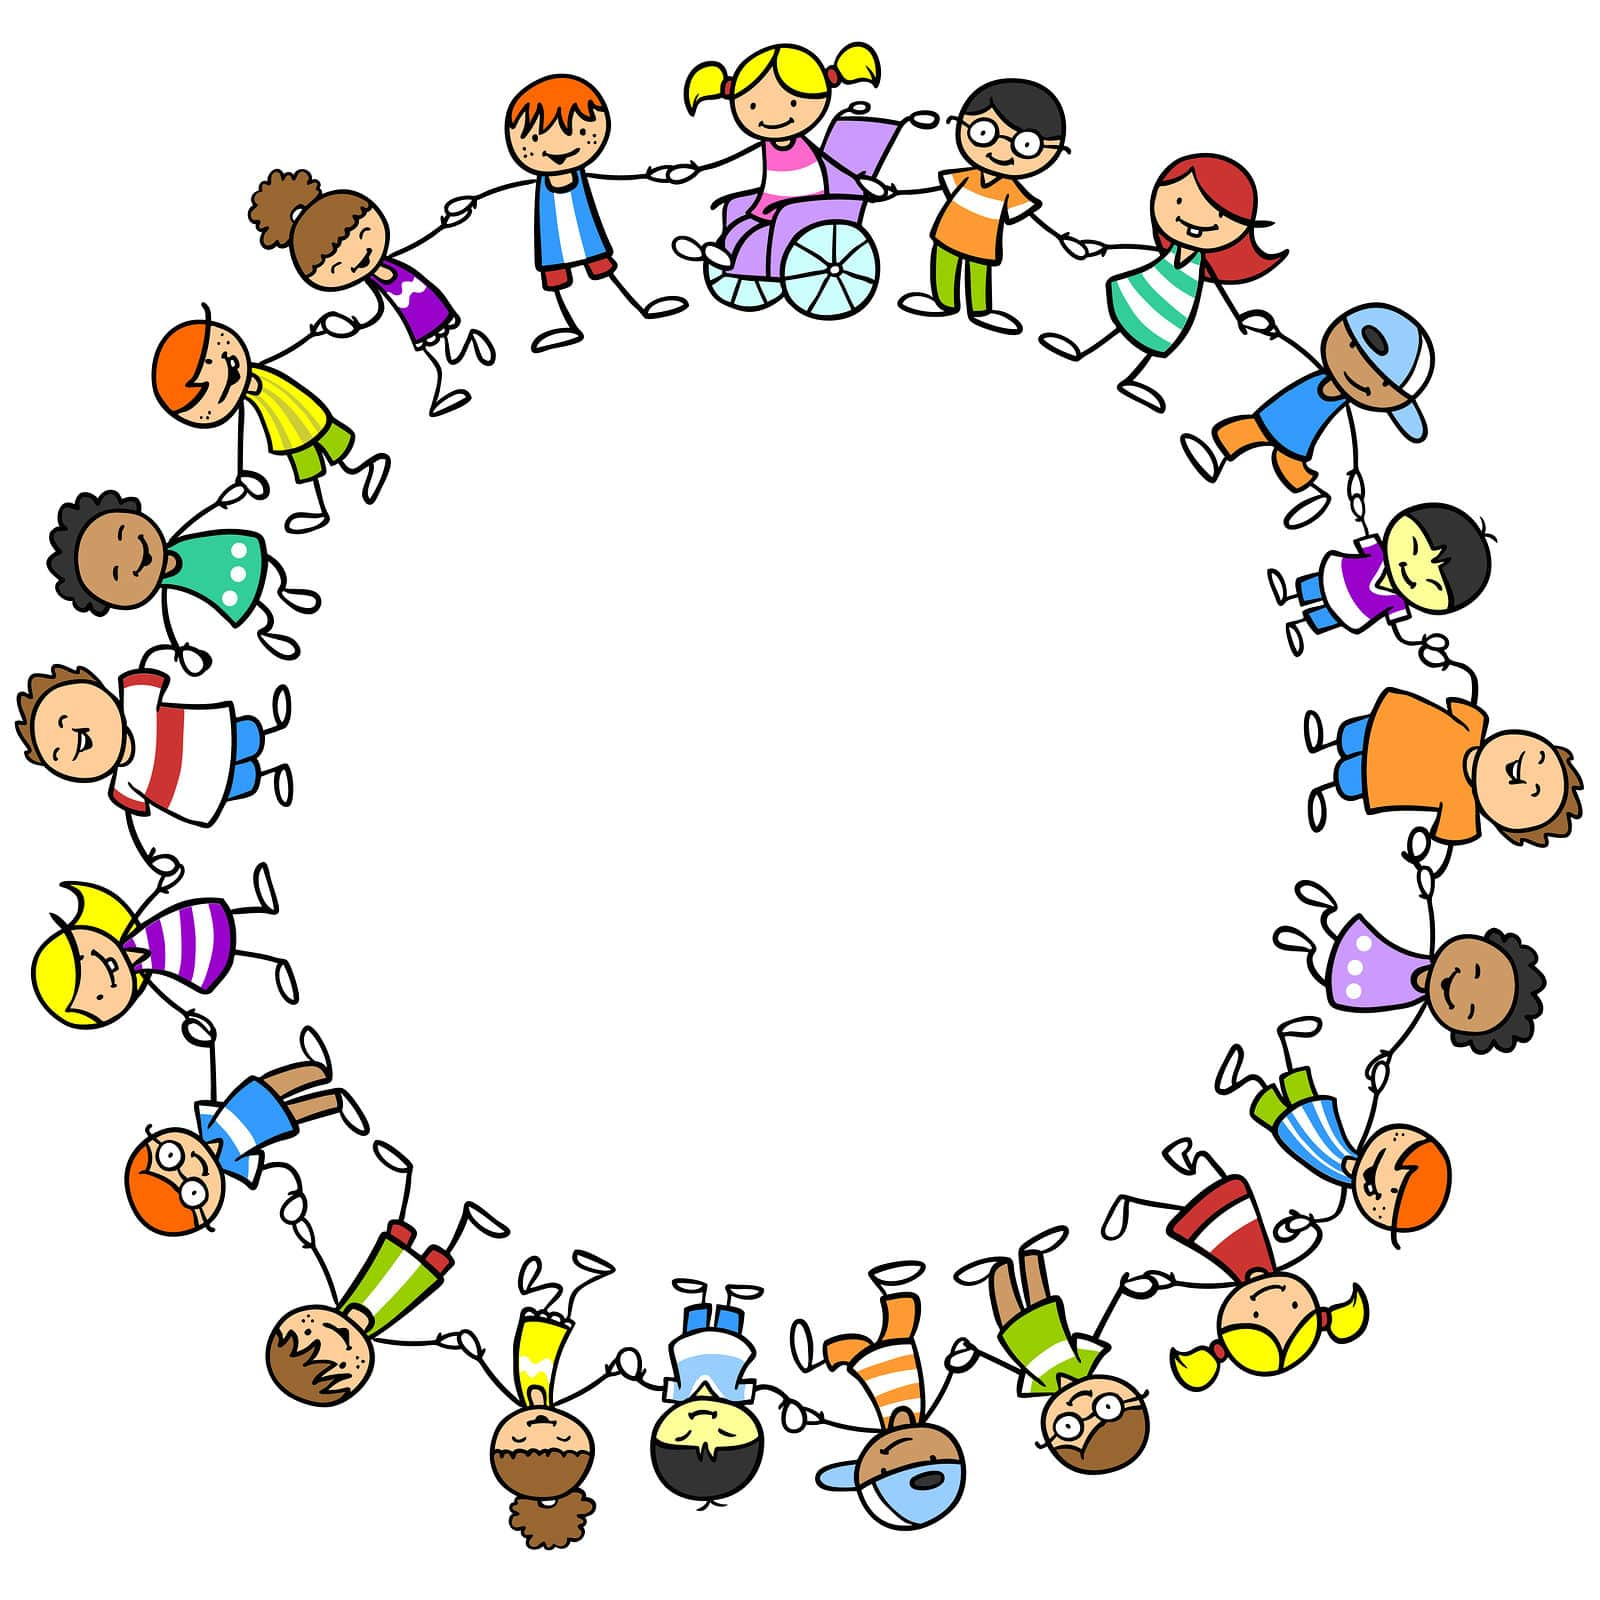 Illustration of diverse happy children holding hands